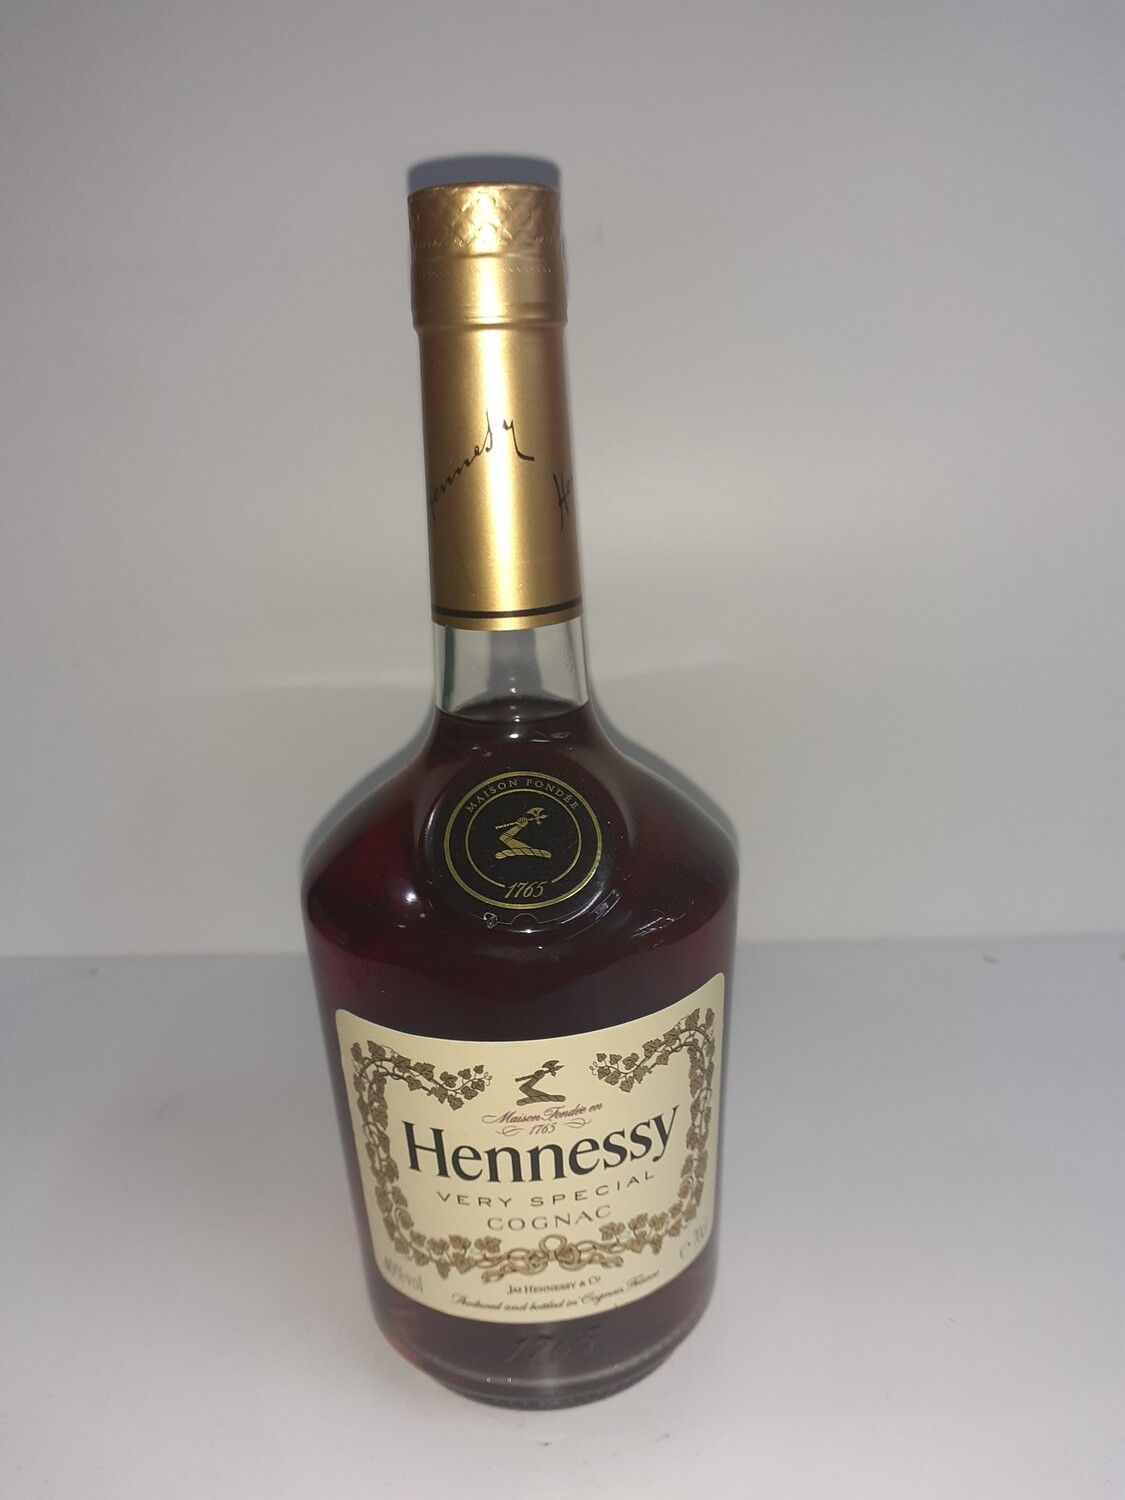 HENNESSY very special cognac